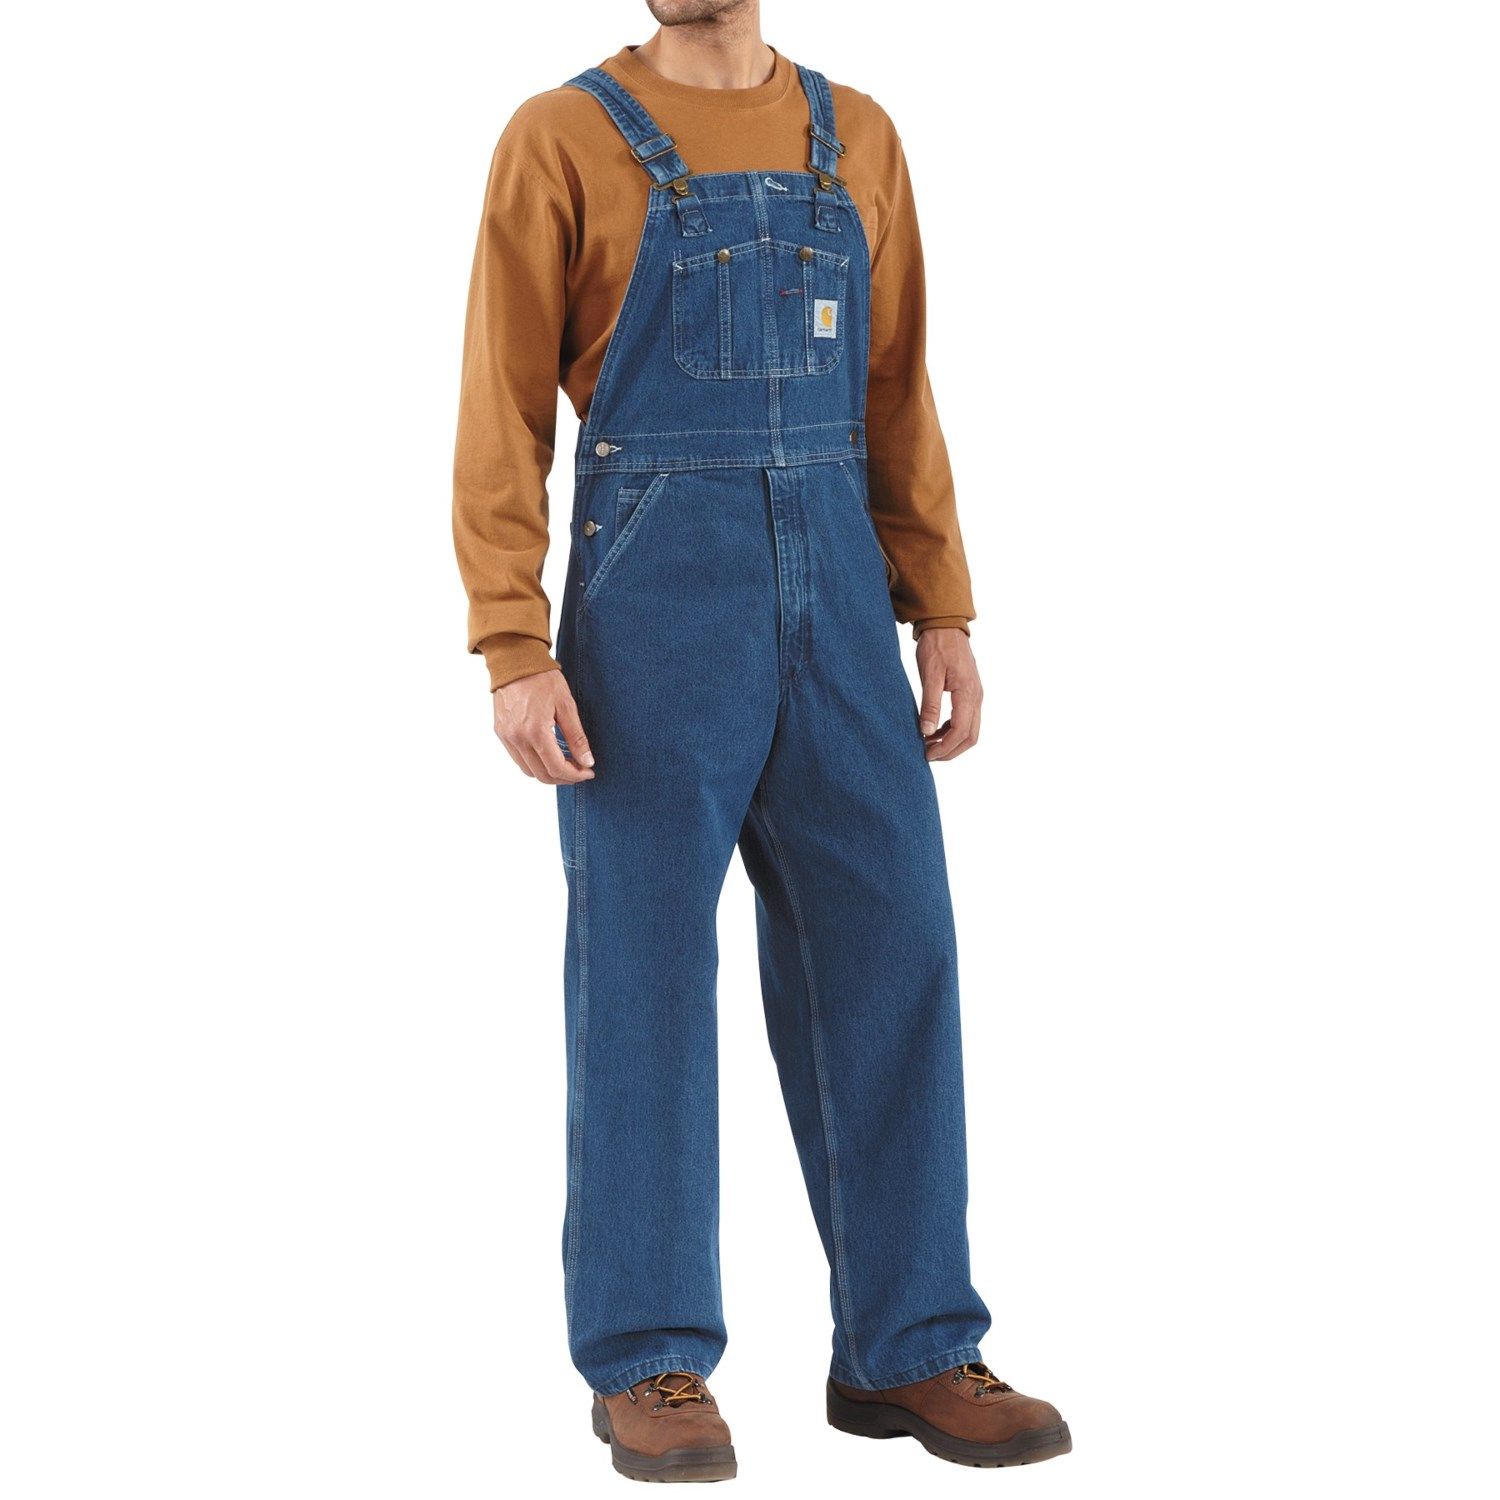 Shop Dickies and find a great selection of men's coveralls and bib overalls. Our collection is durable and able to stand up to the toughest conditions.